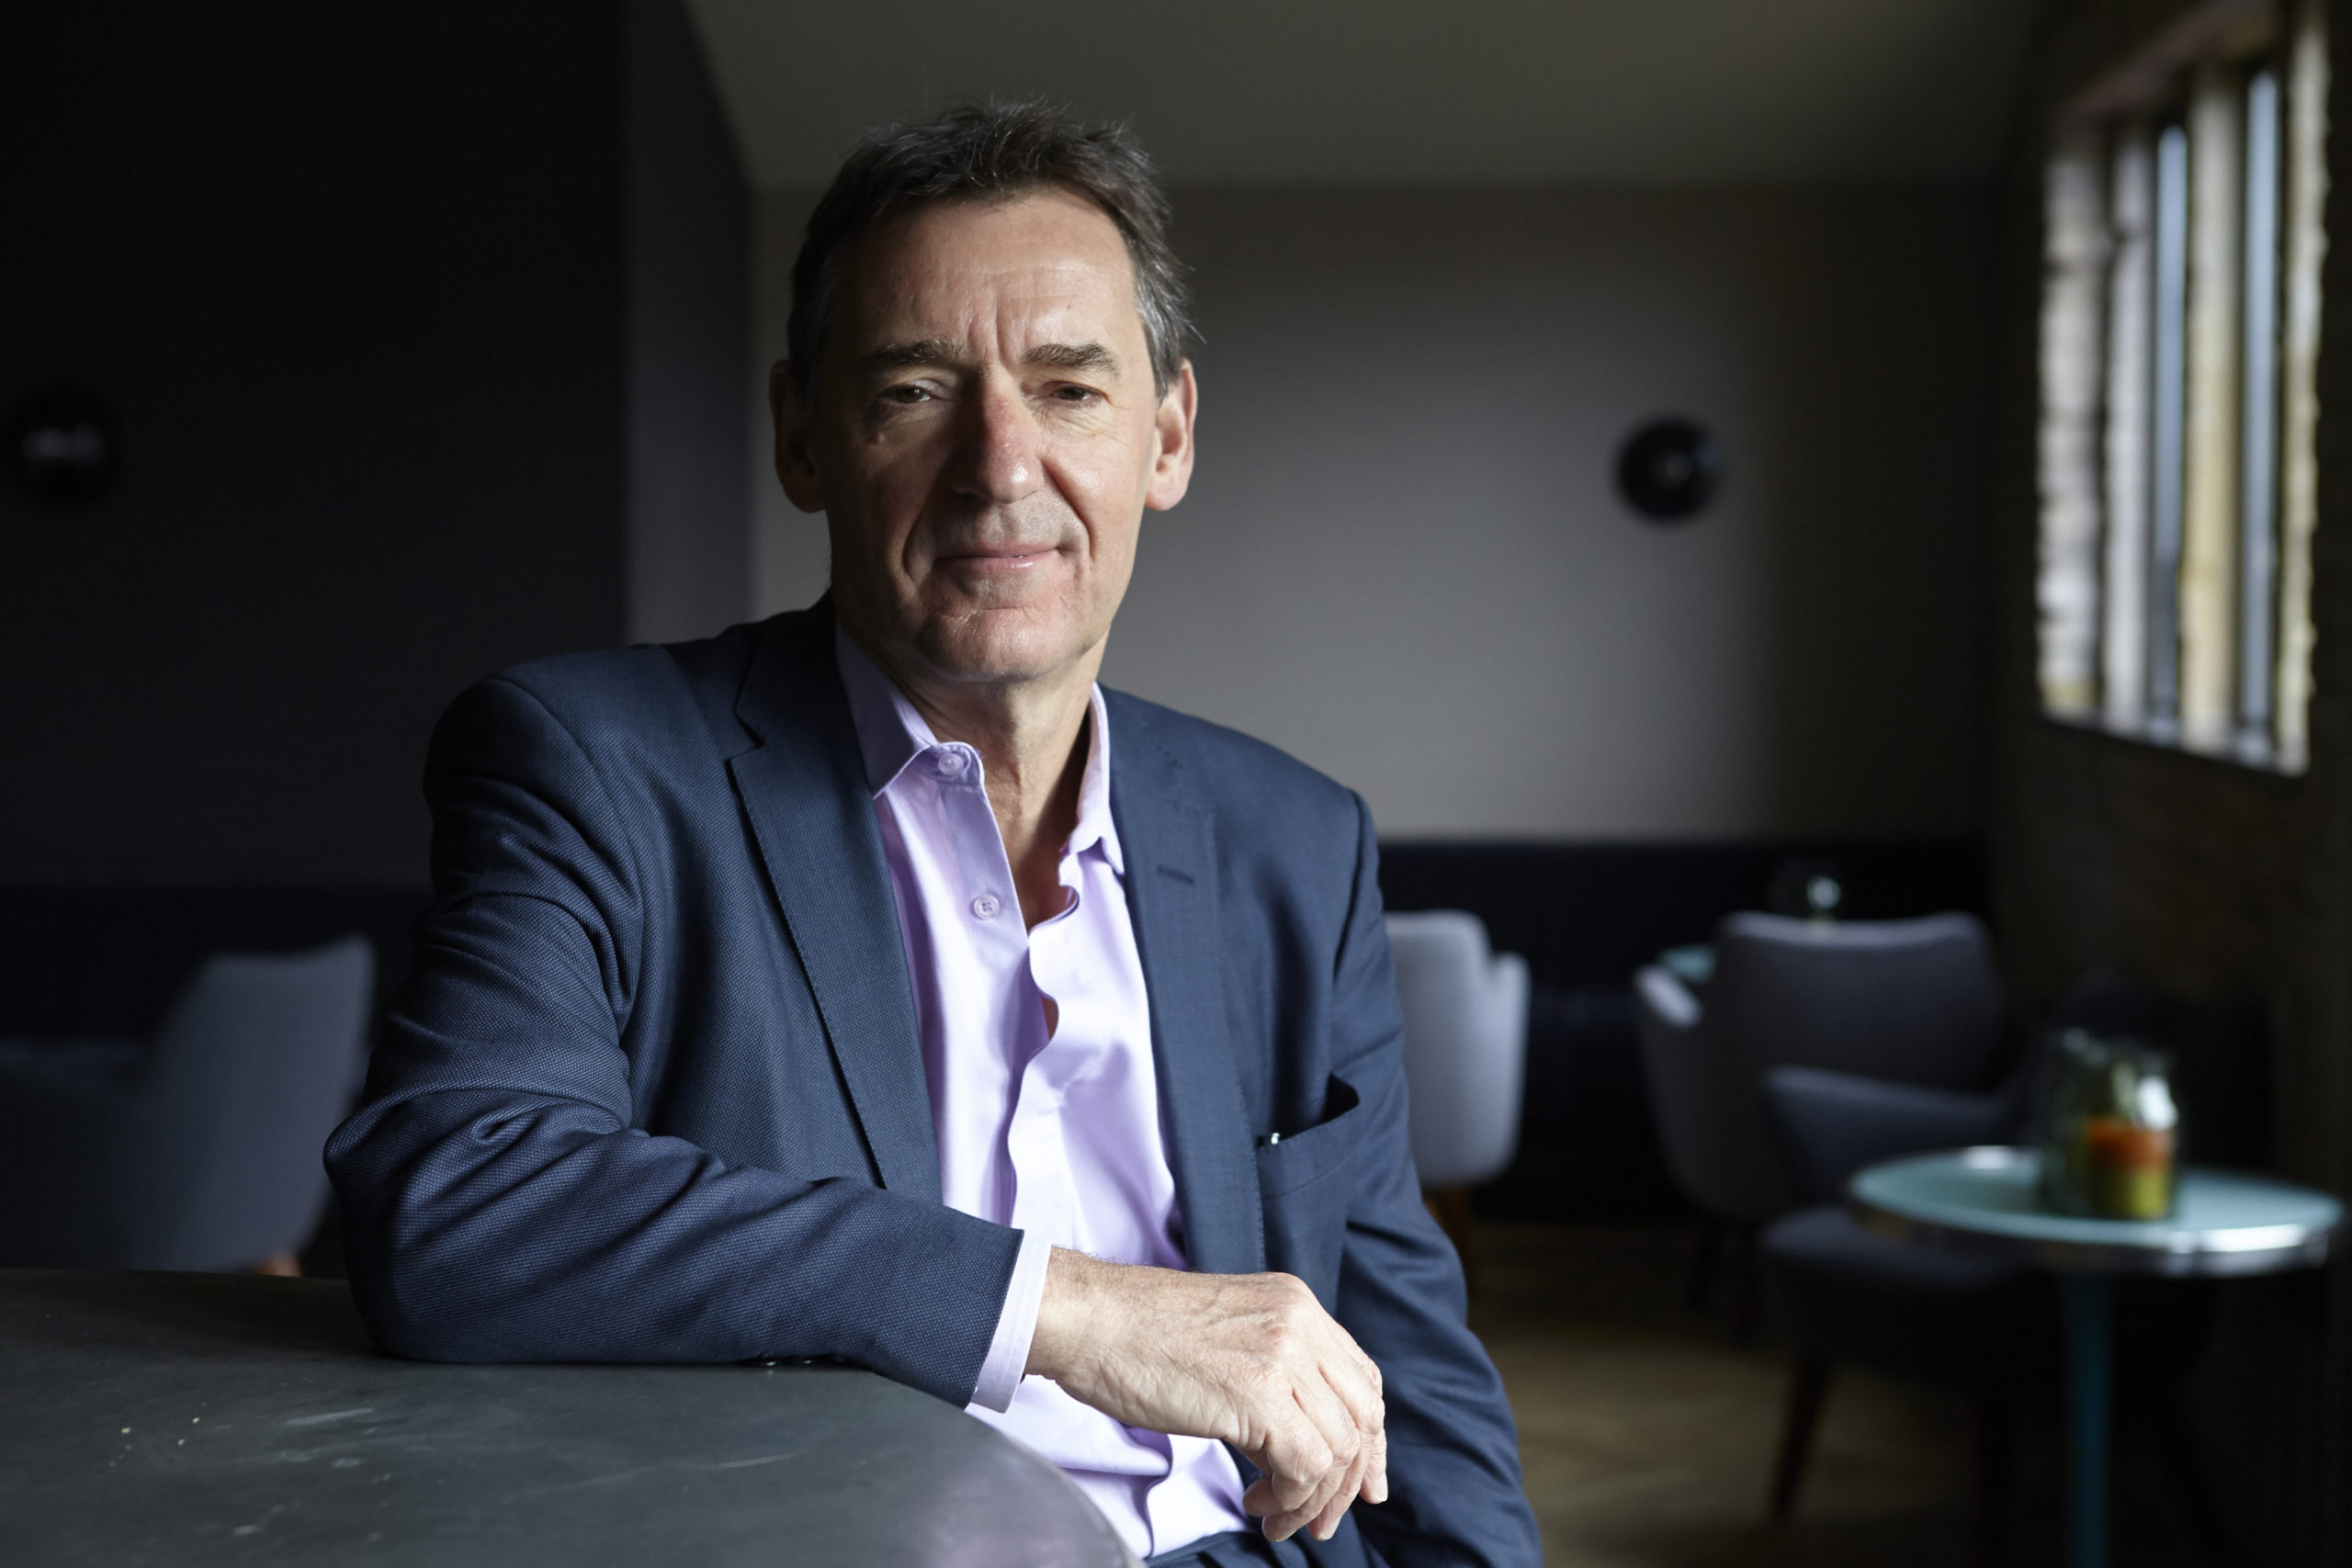 'We will probably emerge with more evenly shared economies' – Lord Jim O'Neill on the impact of coronavirus